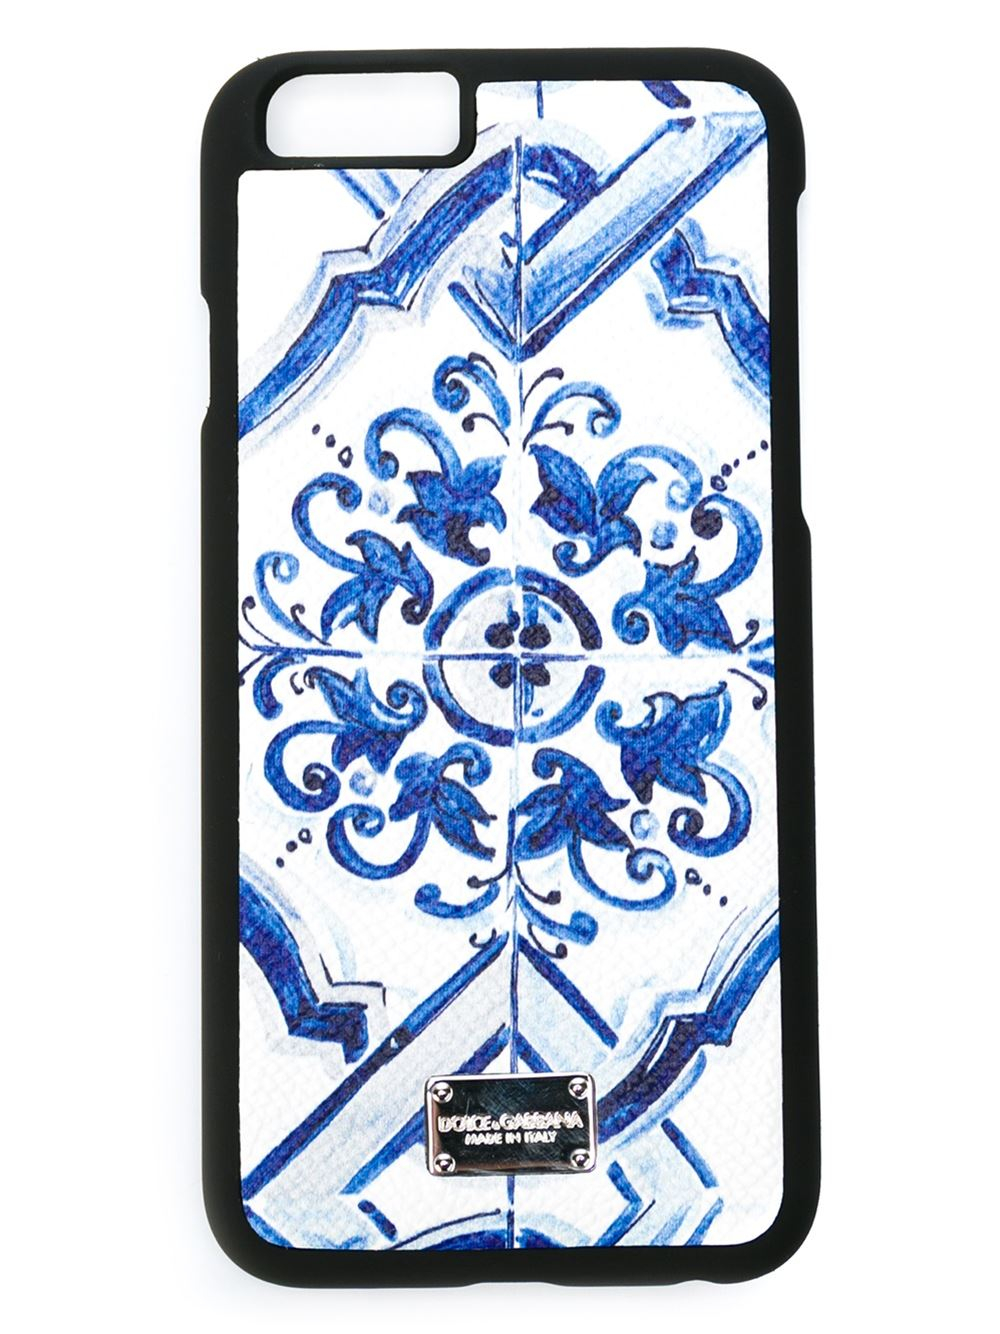 separation shoes 95117 86a30 Dolce & Gabbana Blue 'Majolica' Print Iphone 6 Case